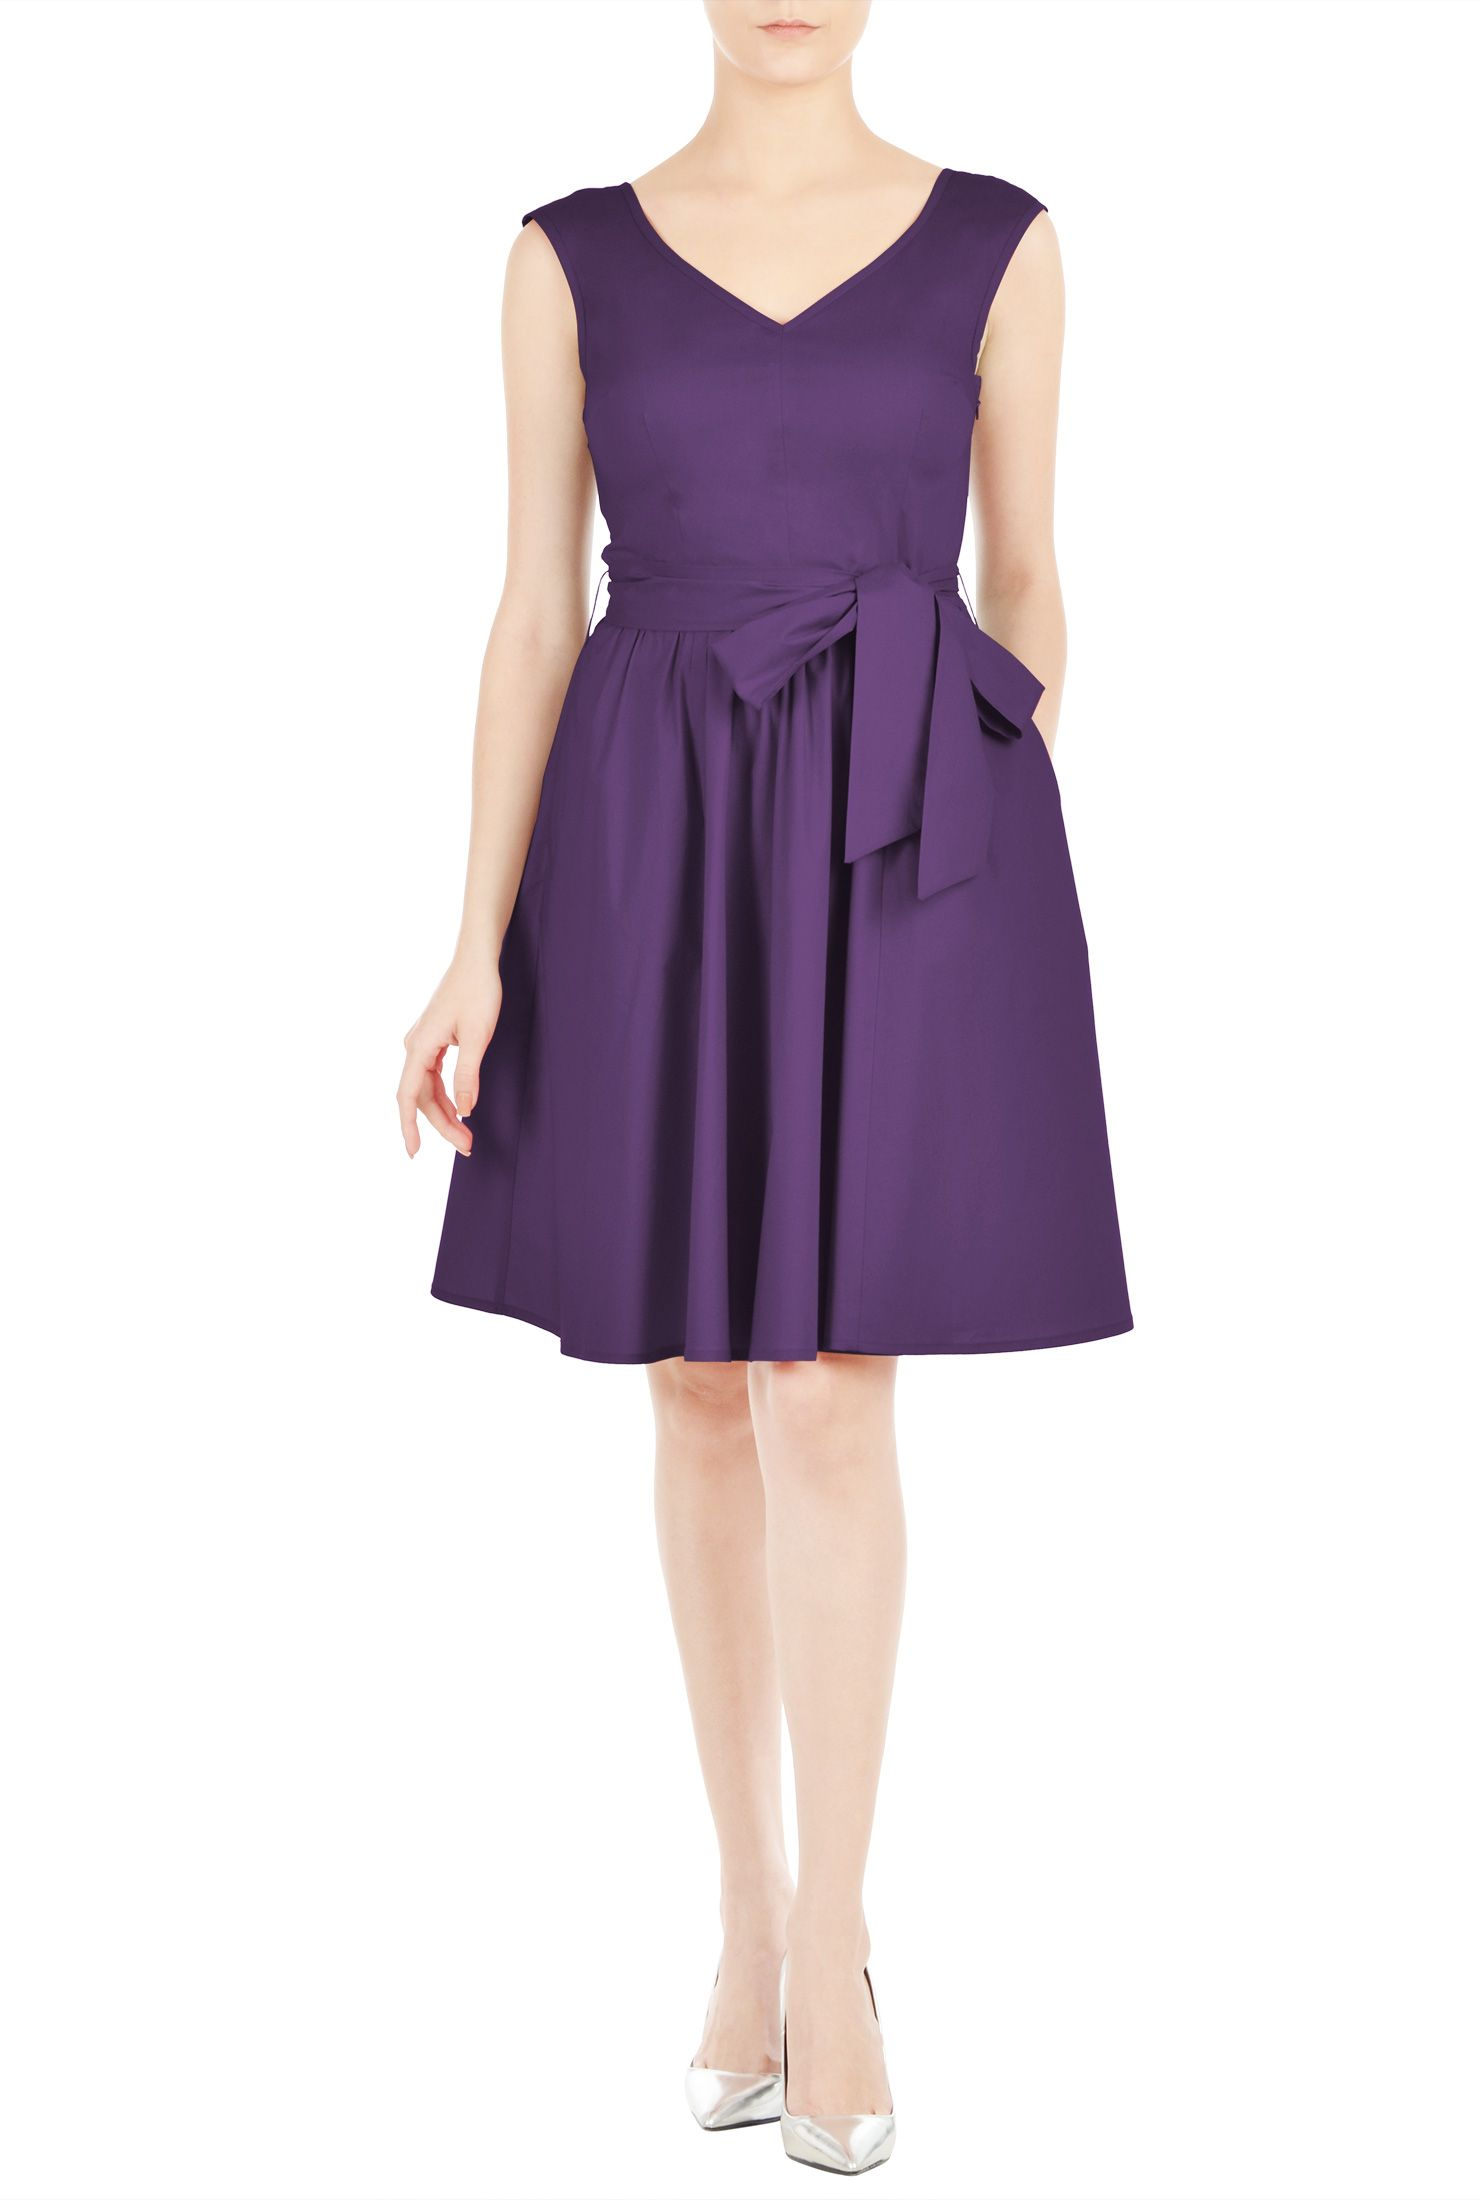 Stretch cotton poplin covers our wide vneck woven dress fashioned